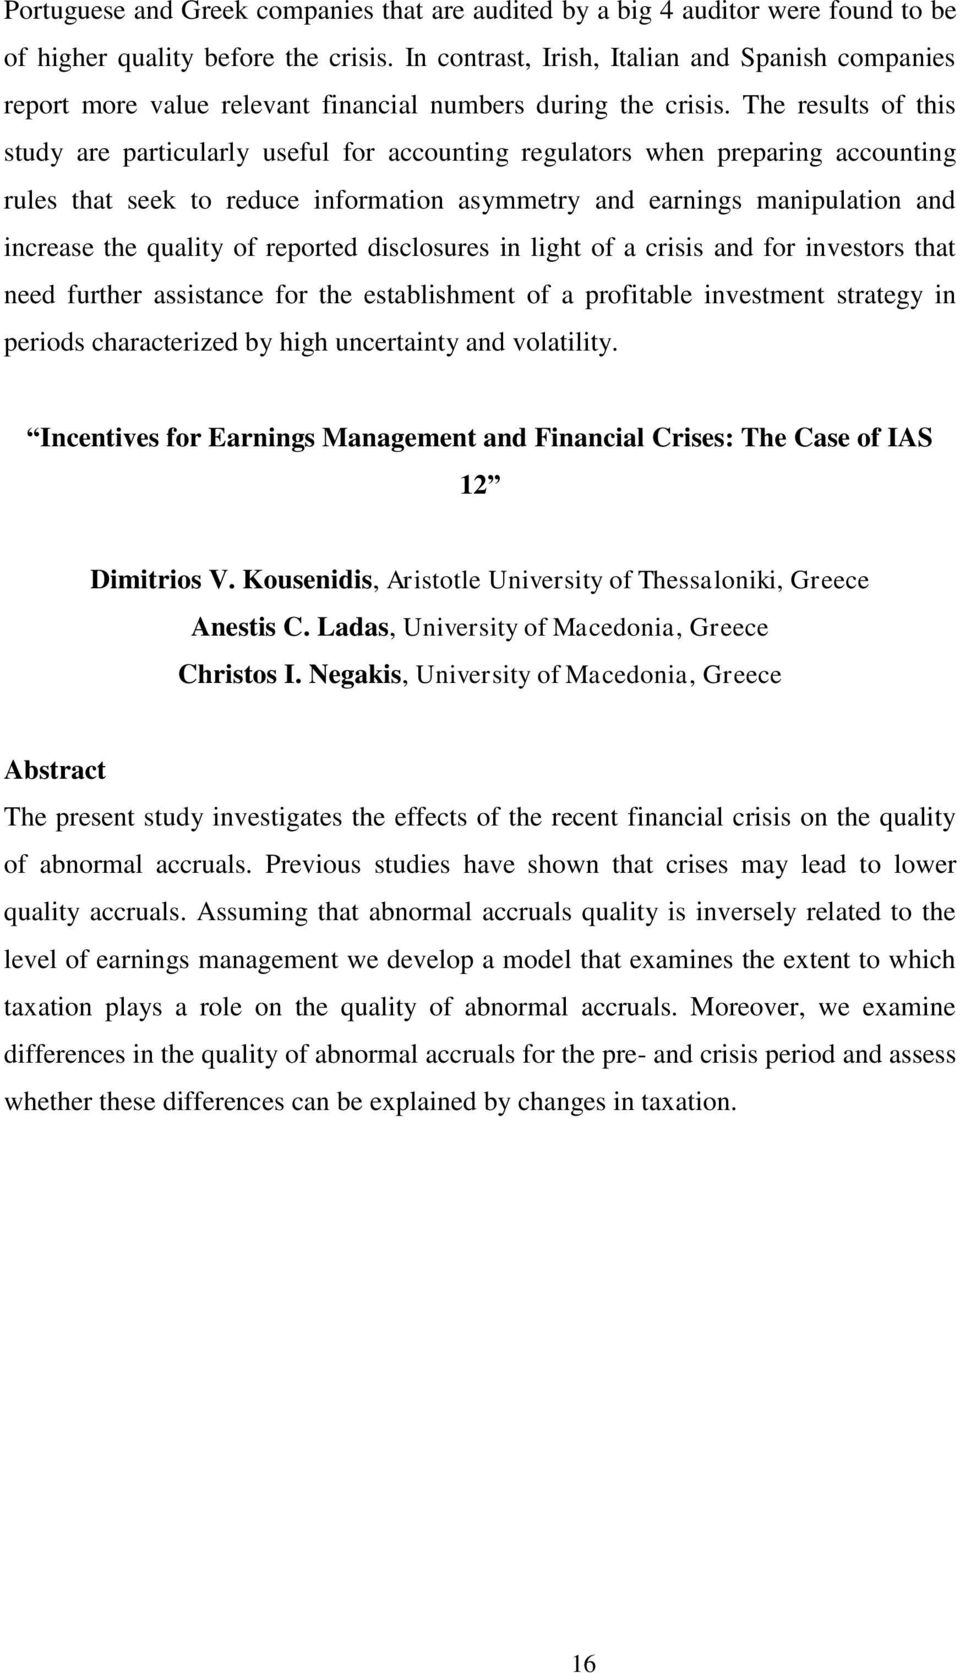 The results of this study are particularly useful for accounting regulators when preparing accounting rules that seek to reduce information asymmetry and earnings manipulation and increase the